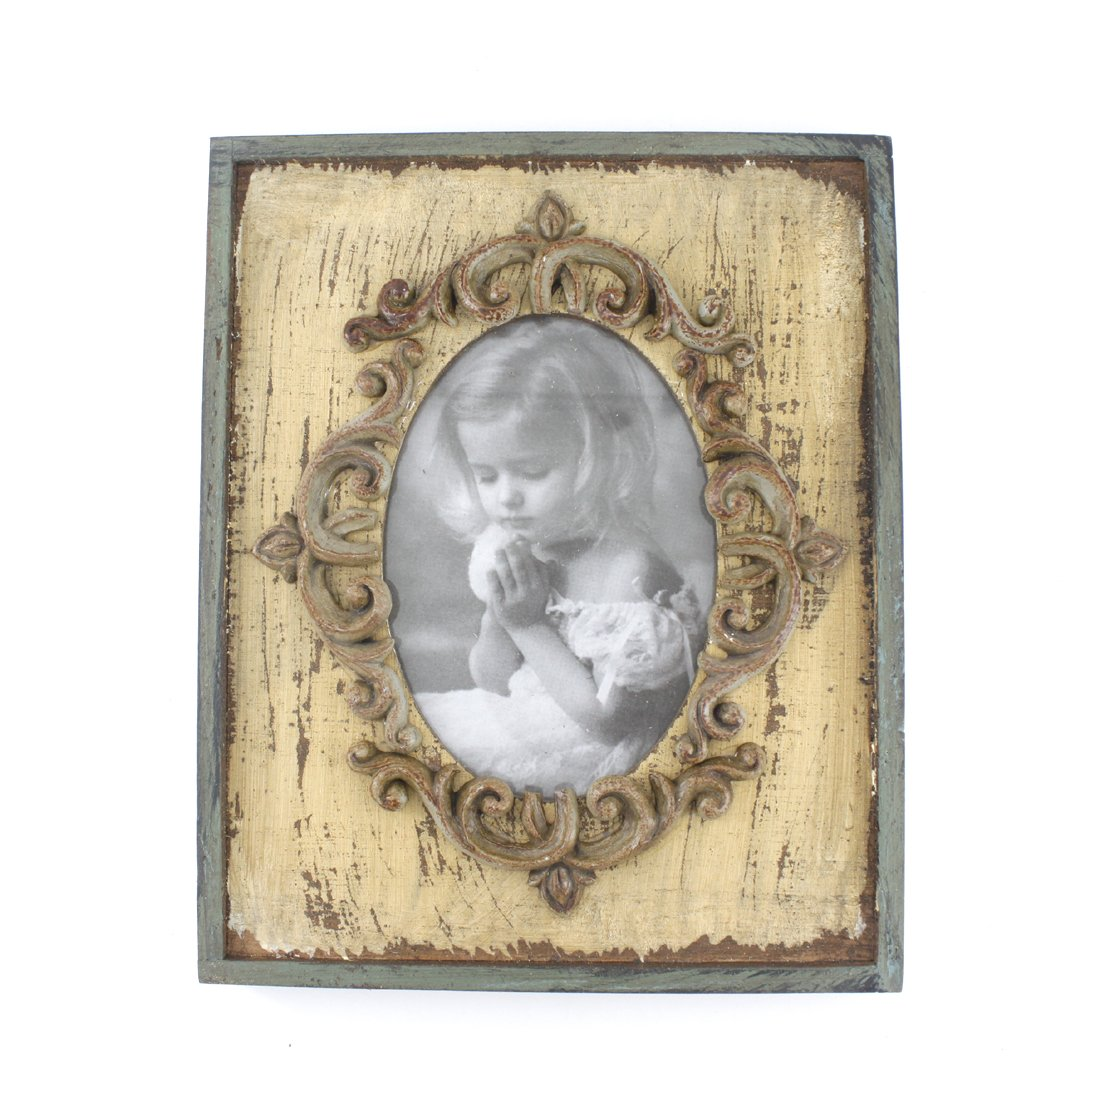 3x5-inch Vintage Rustic Feel Wooden Family Picture Photo Frame with Glass Front for Desk Top (Beige) 0